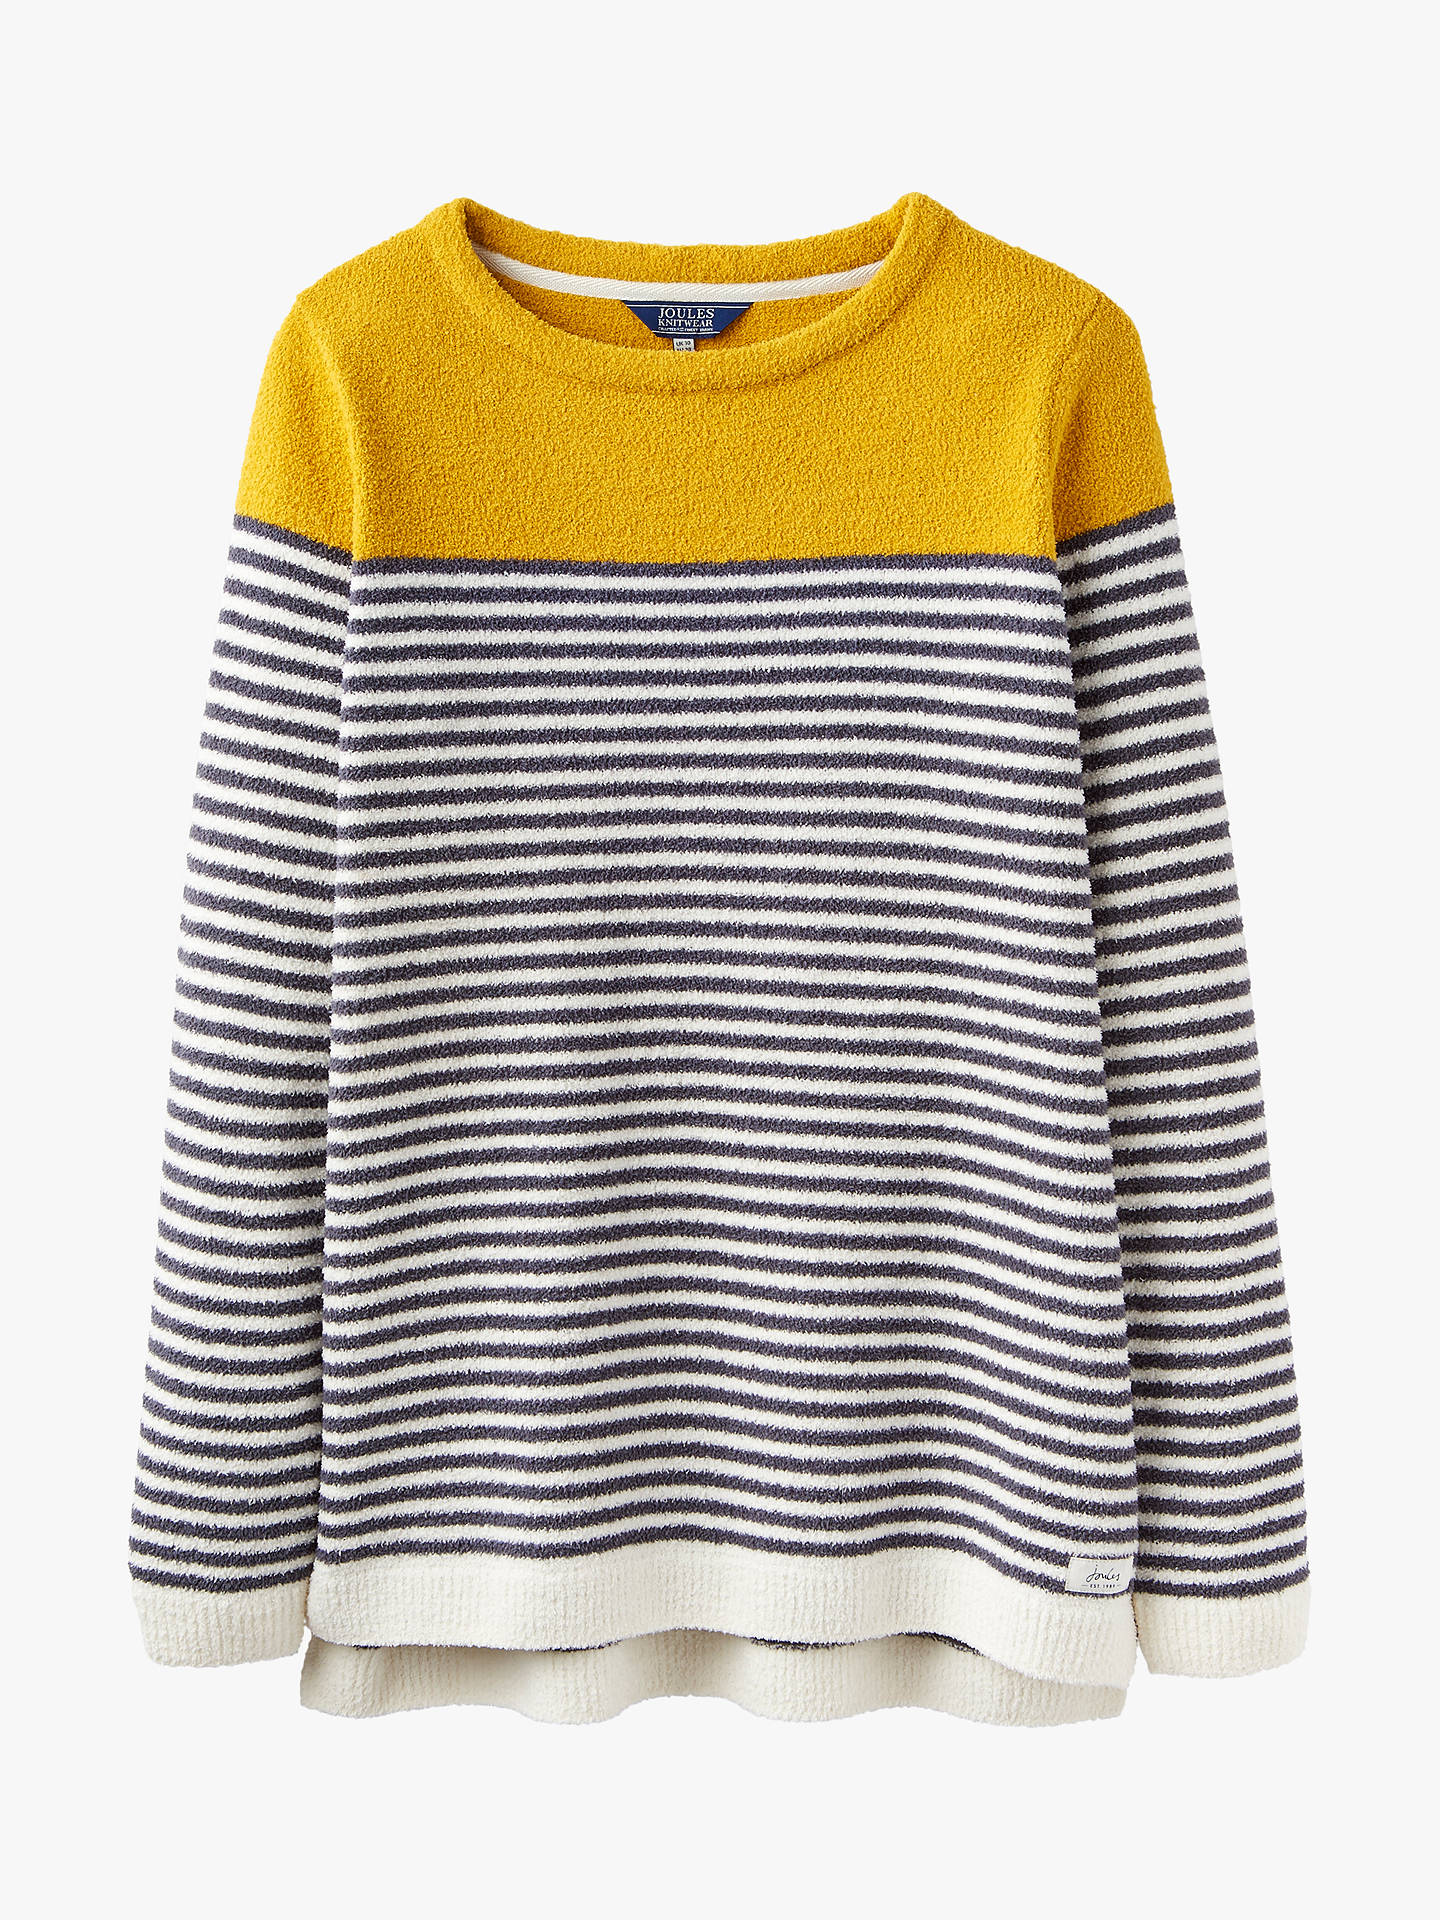 1ef4f58f86e Joules Seaham Chenille Stripe Jumper, Grey/Cream/Gold at John Lewis ...